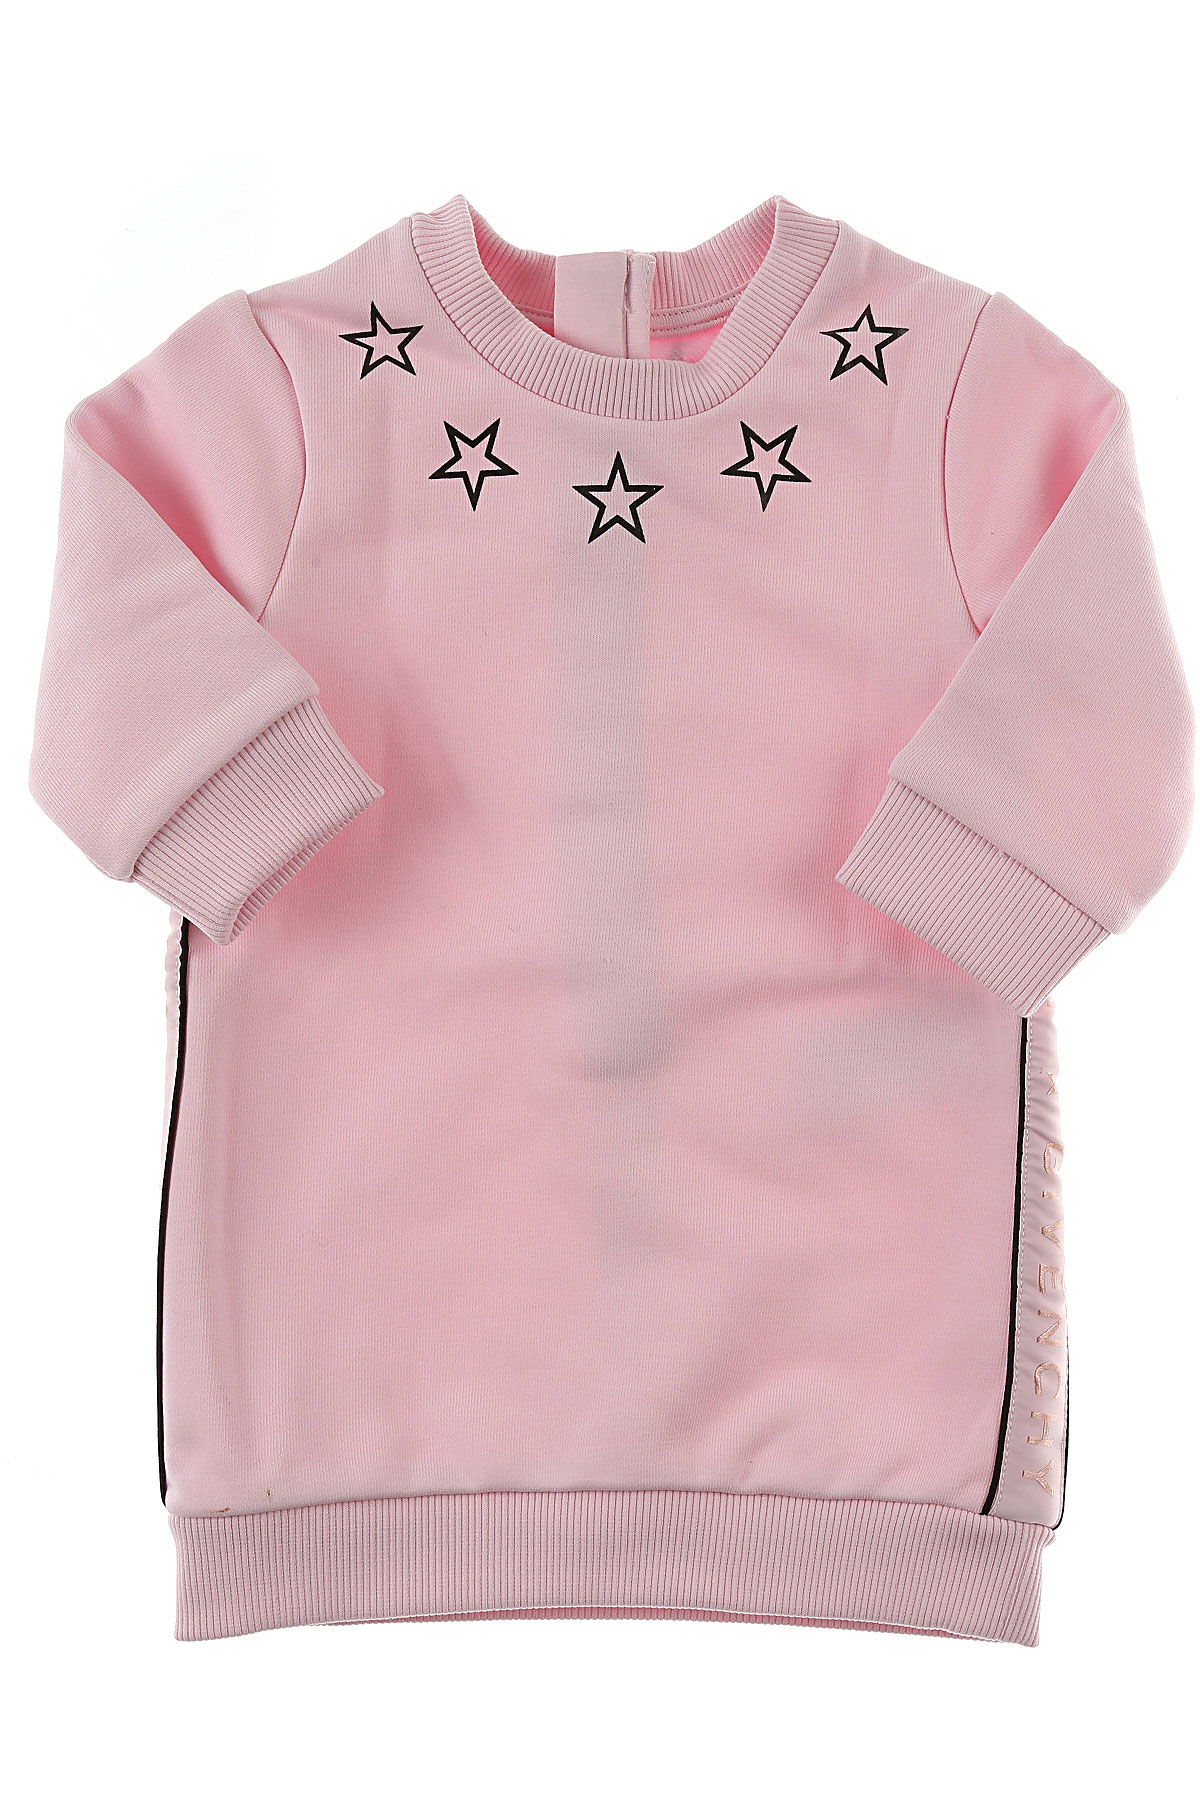 Image of Givenchy Baby Dress for Girls, Pink, Cotton, 2017, 12M 18M 6M 9M